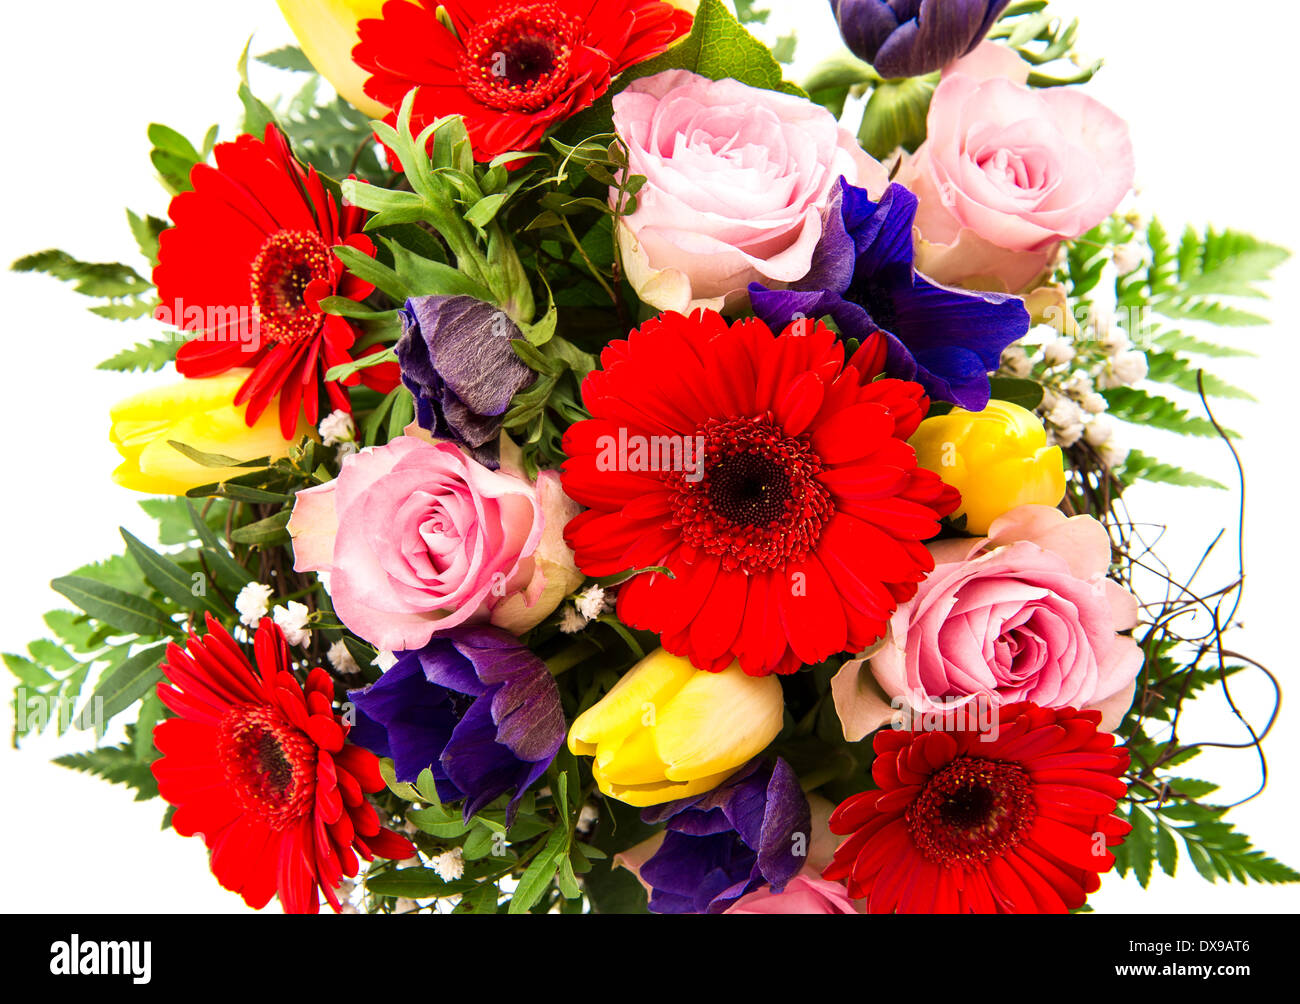 Closeup Of Colorful Spring Flowers Bouquet Pink Roses Red Gerbera